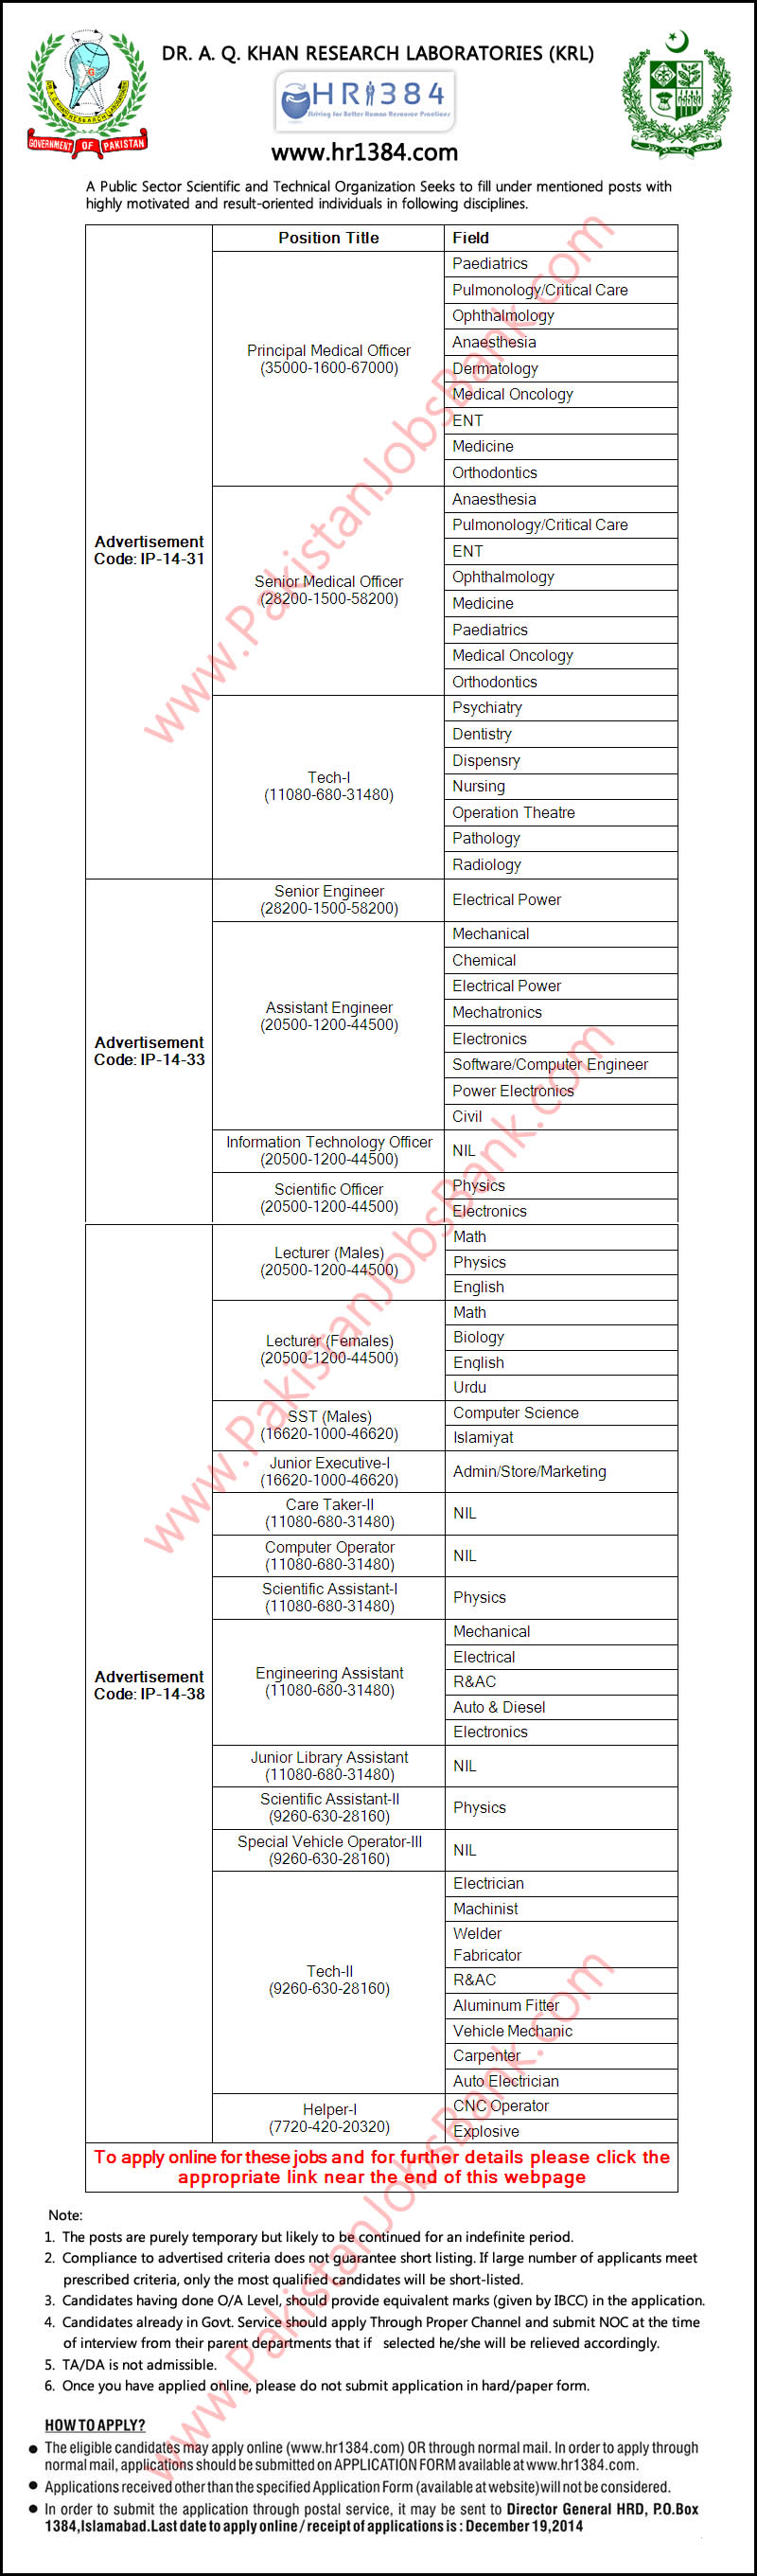 www.hr1384.com Jobs Online Application Form Download 2014 December Latest / New Advertisement